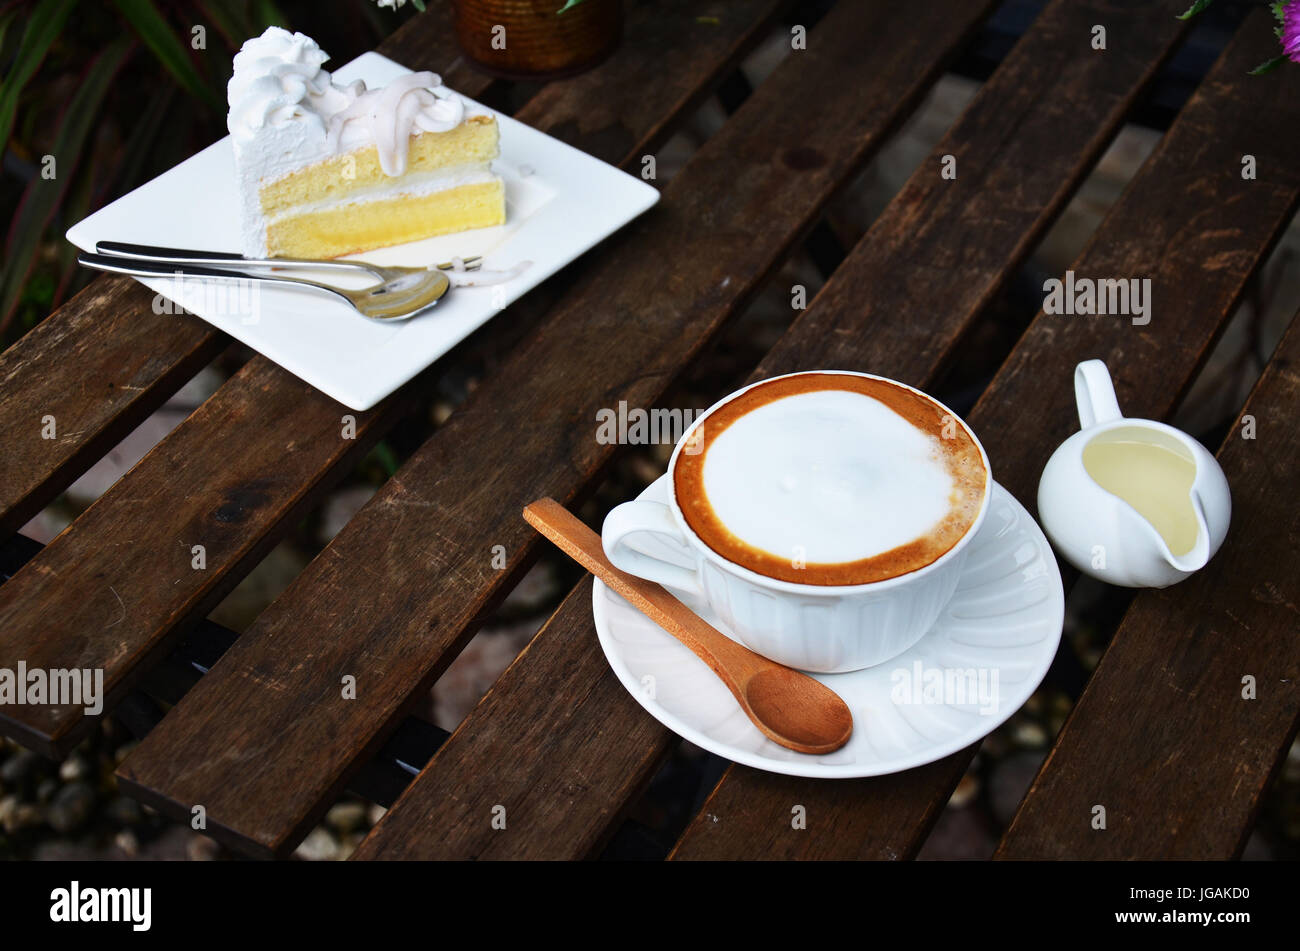 Latte Hot Coffee And Coconut Cake On Table In Garden Of Coffee Shop Stock Photo Alamy